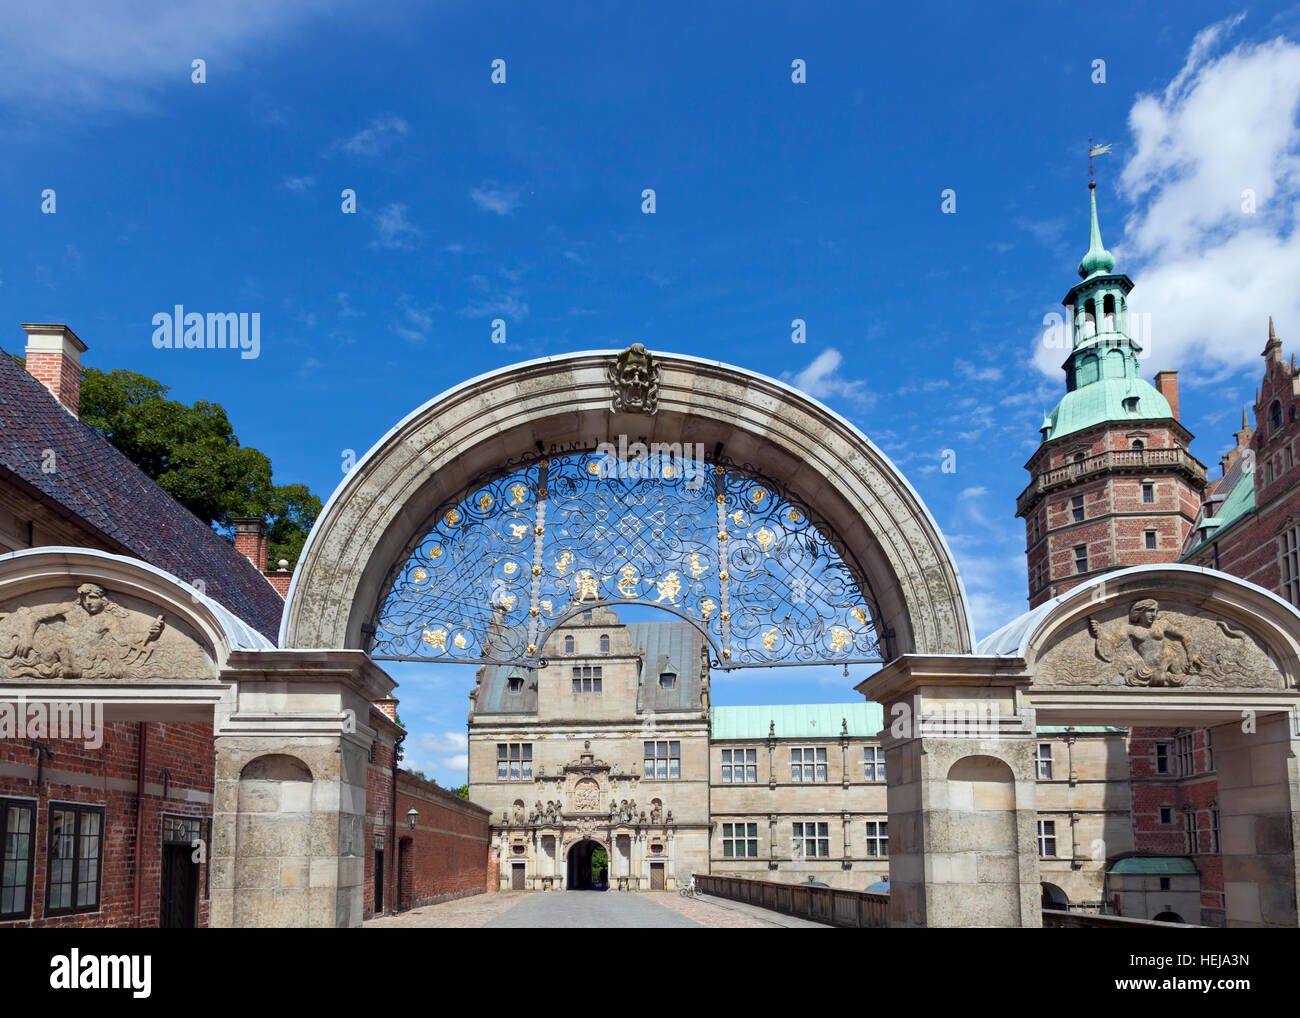 Møntporten, The Mint Gate at Frederiksborg Castle in Hillerød, Hilleroed close to Copenhagen, Denmark - Stock Image